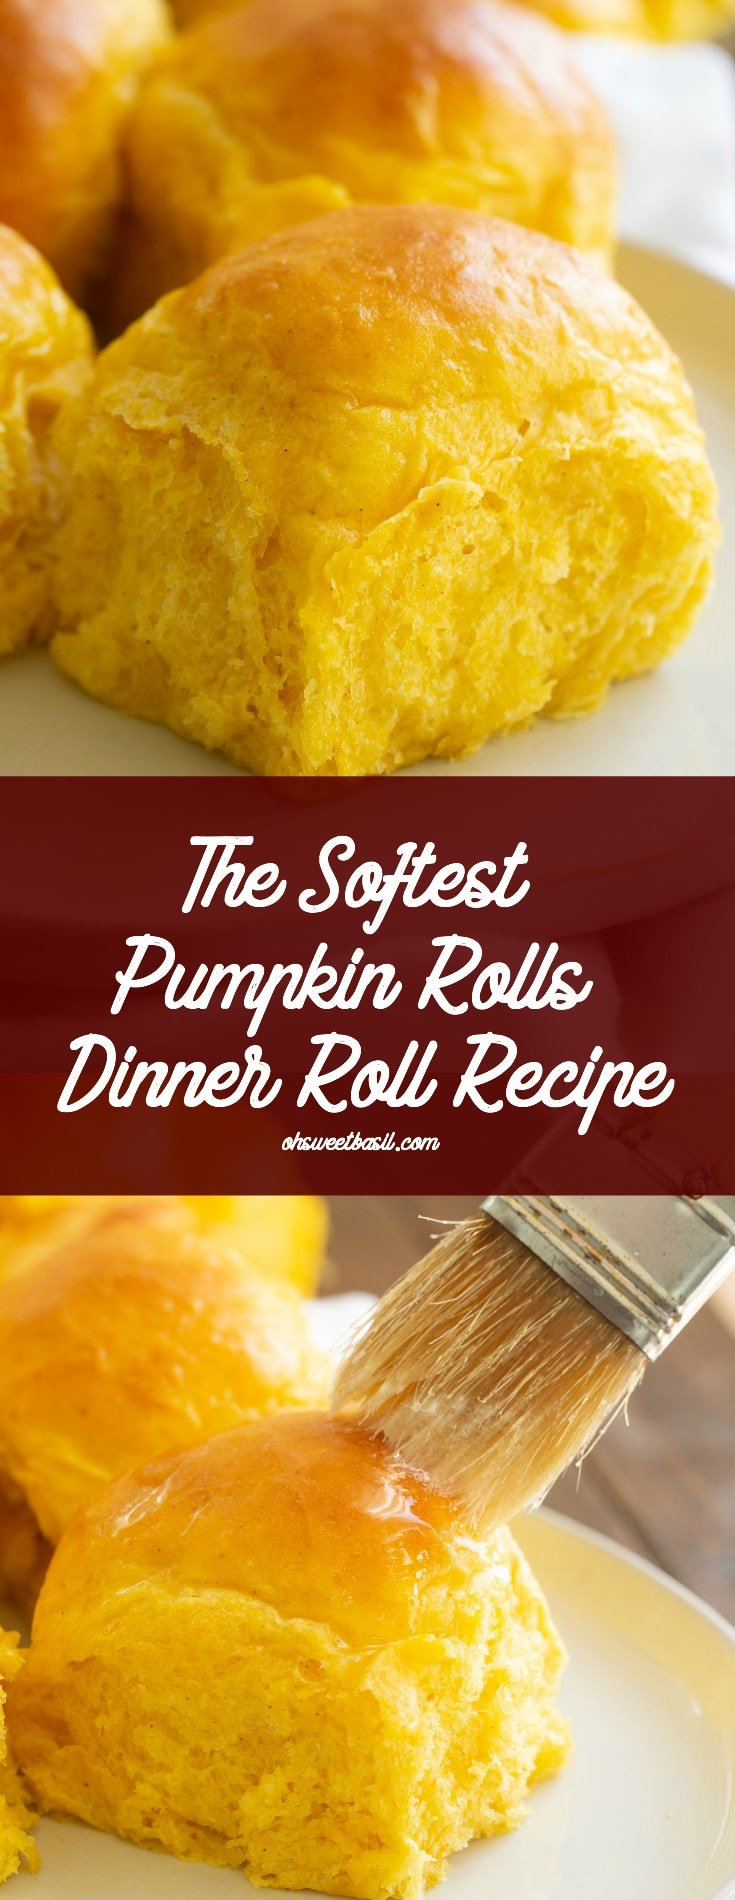 soft and fluffy pumpkin rolls on a white dish